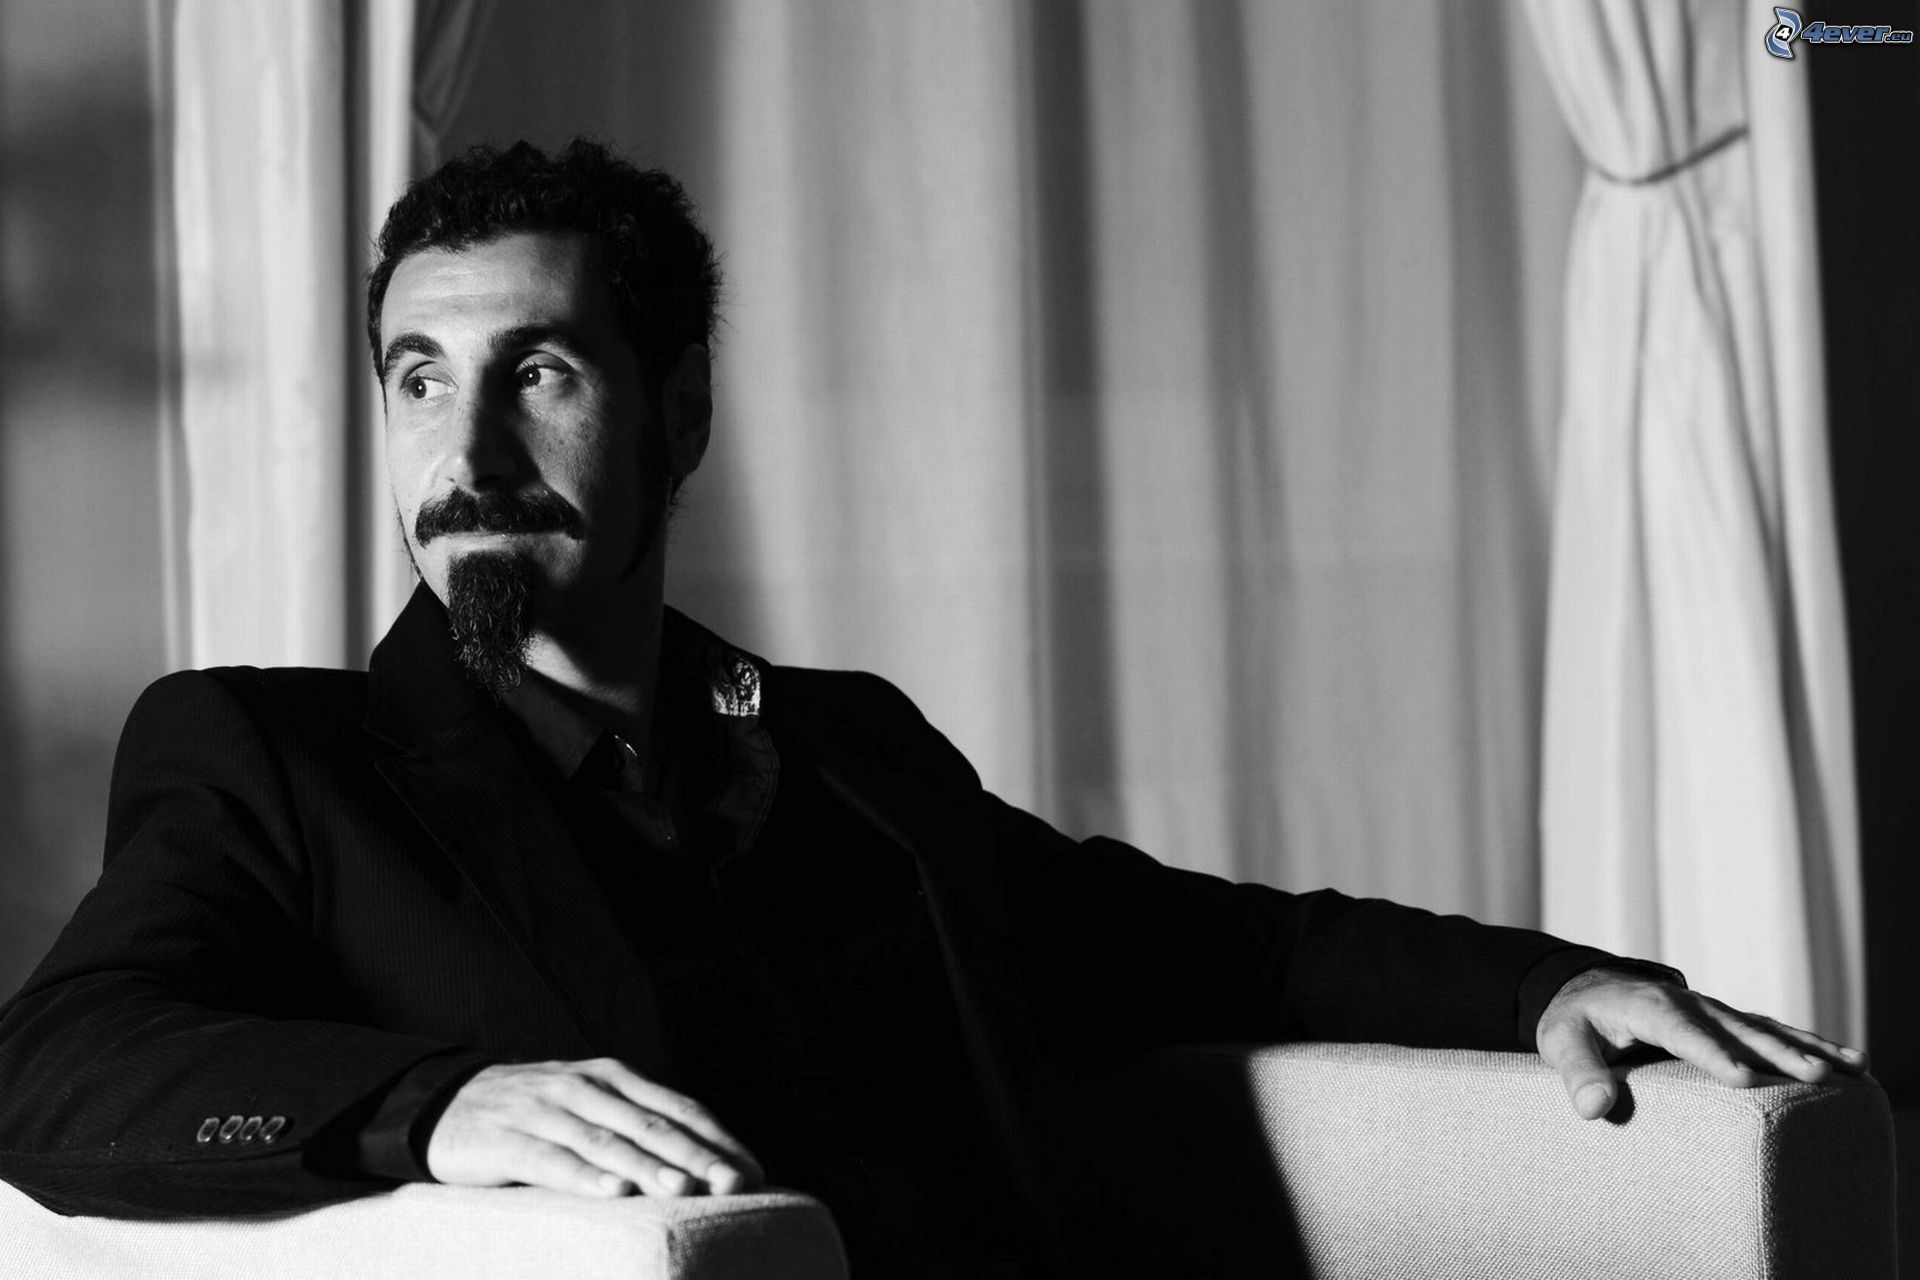 serj tankian essay Serj tankian is a lebanese-born armenian-american singer-songwriter,  composer,  following the september 11 attacks he wrote an essay in which he  wrote: if we carry out bombings on afghanistan or elsewhere to appease public.